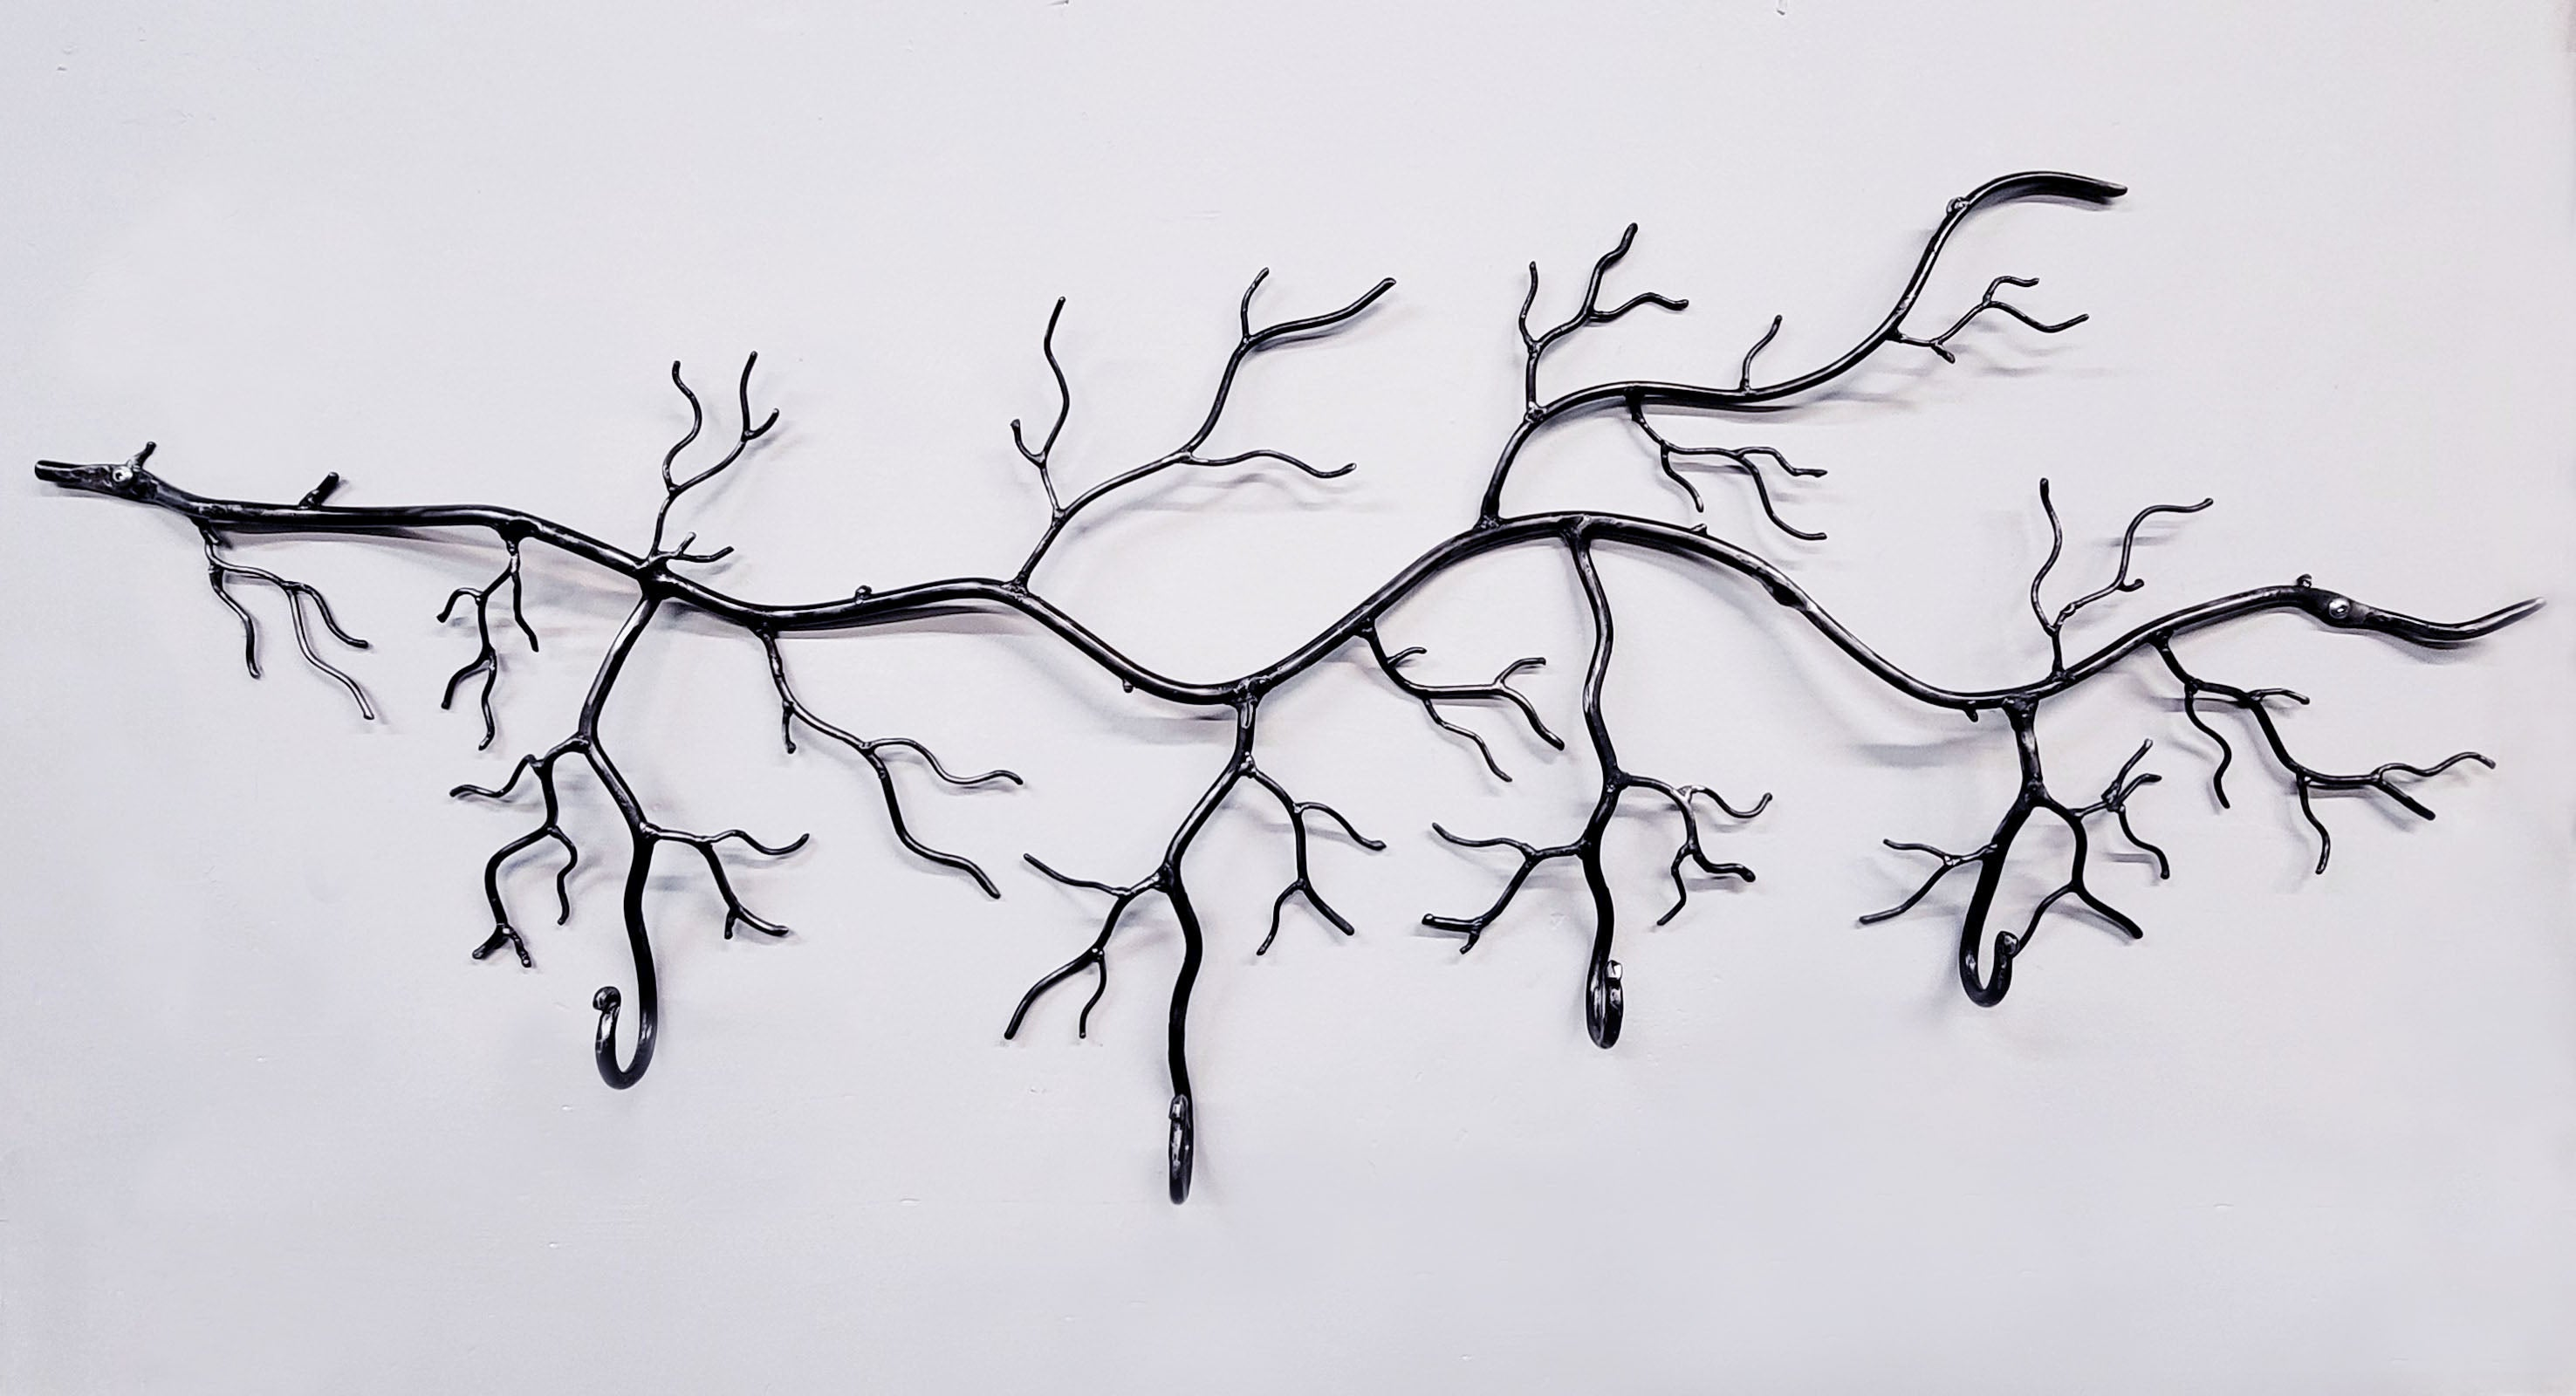 Large Tree Branch with 4 Hooks